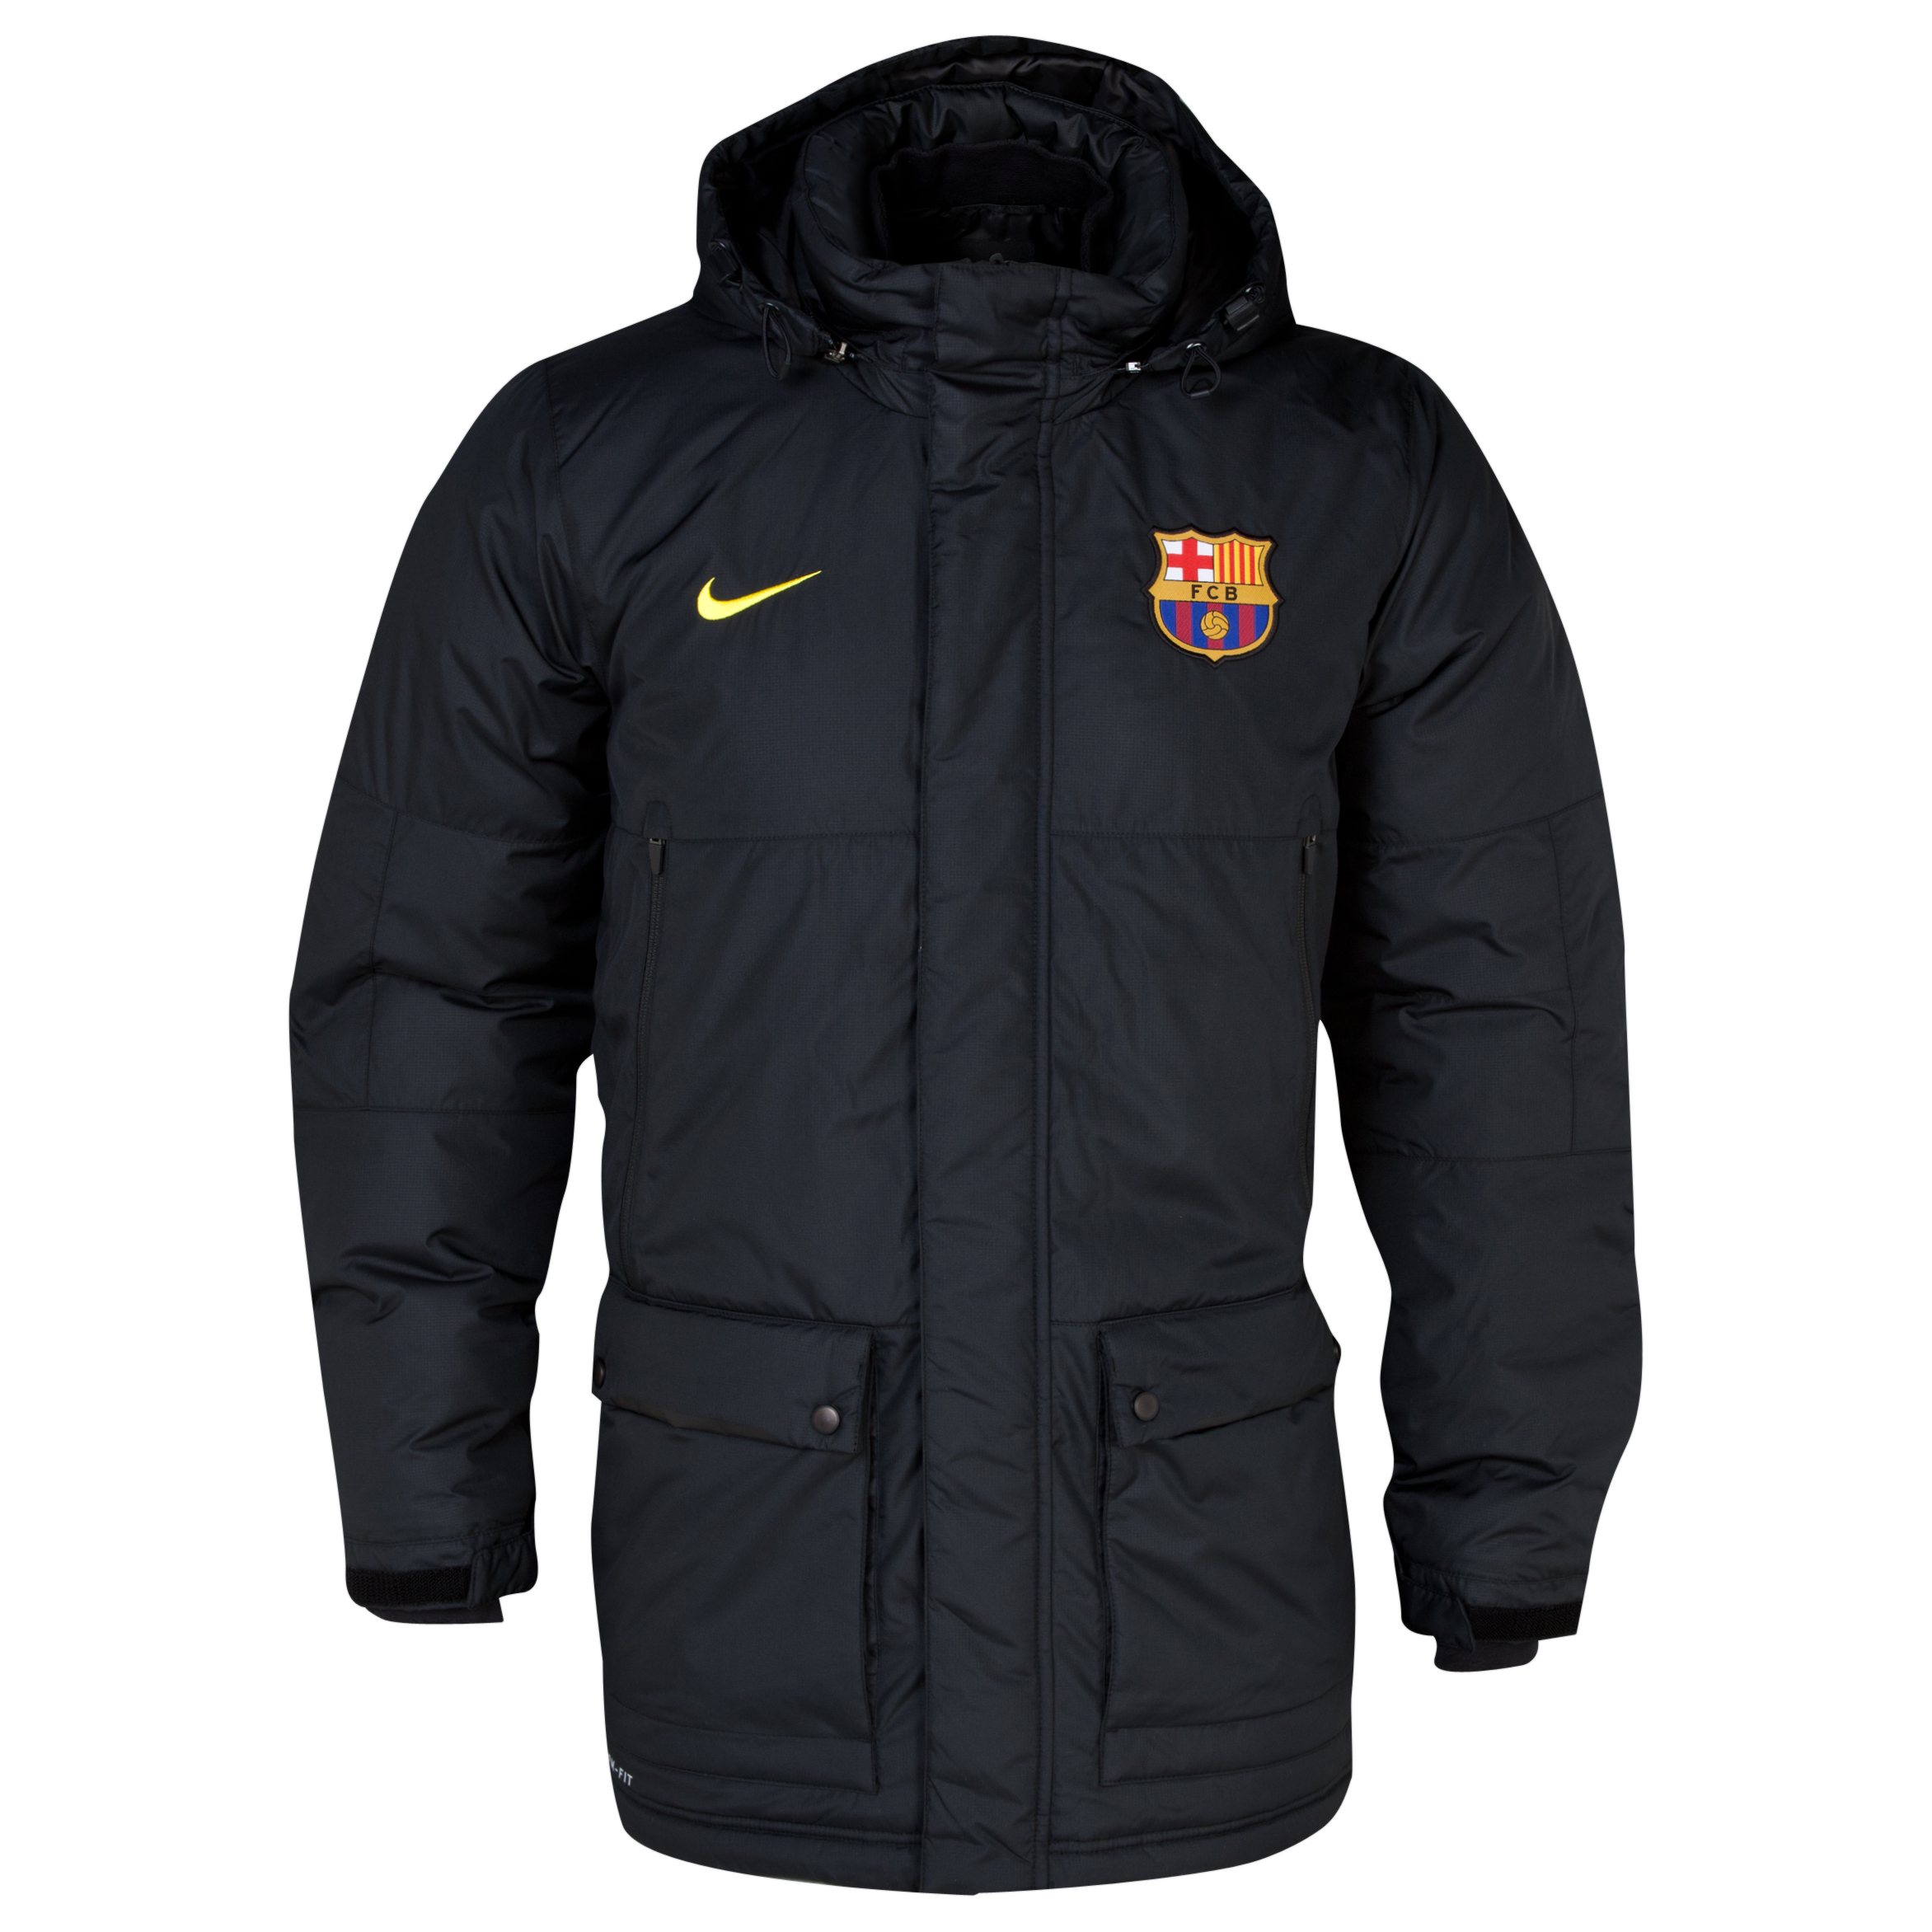 Barcelona Squad Medium Fill Jacket - Black/Vibrant Yellow Black